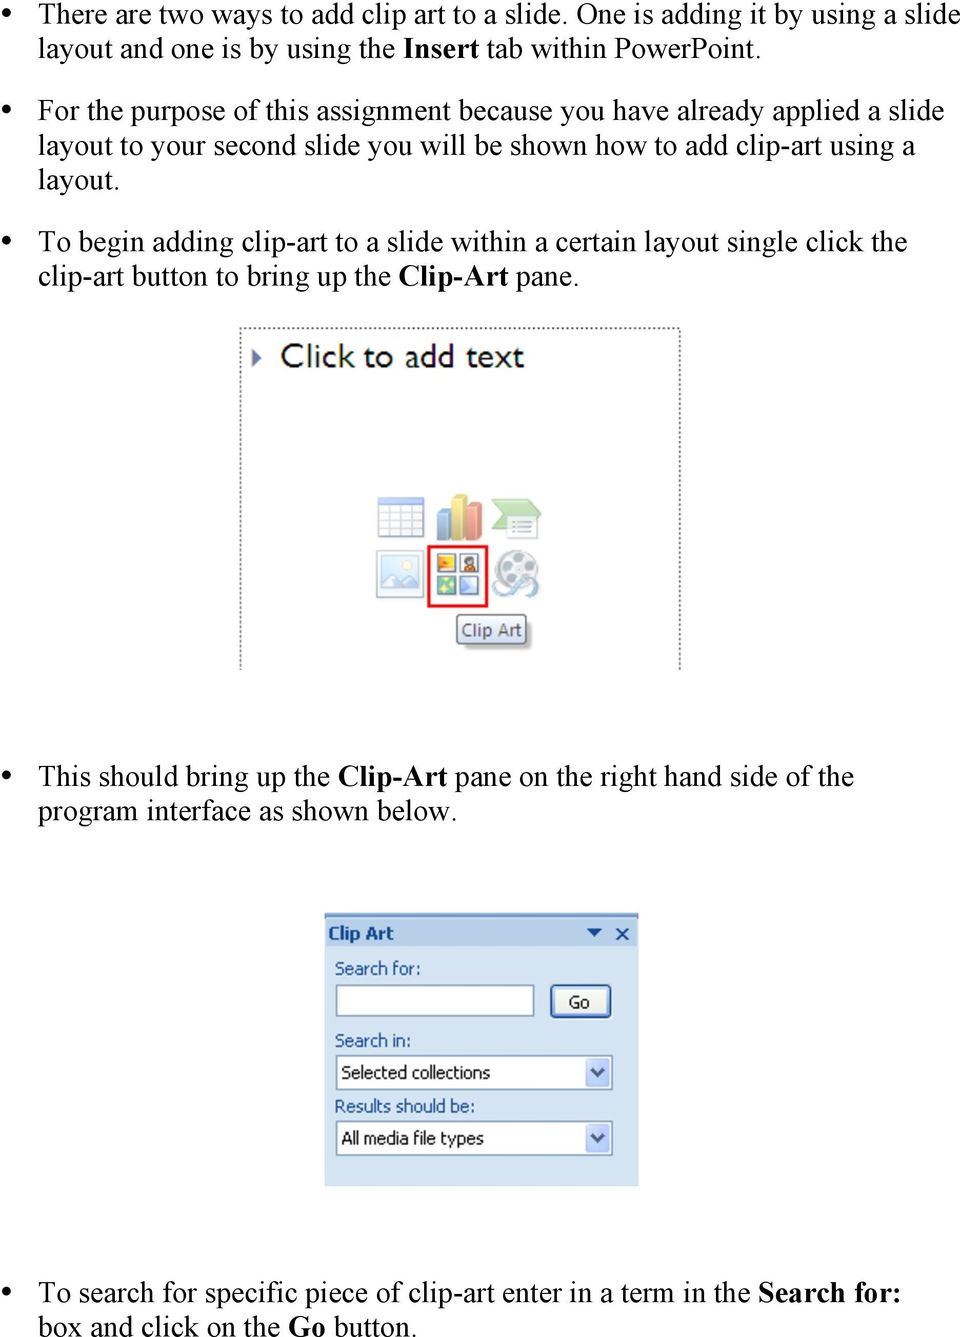 To begin adding clip-art to a slide within a certain layout single click the clip-art button to bring up the Clip-Art pane.